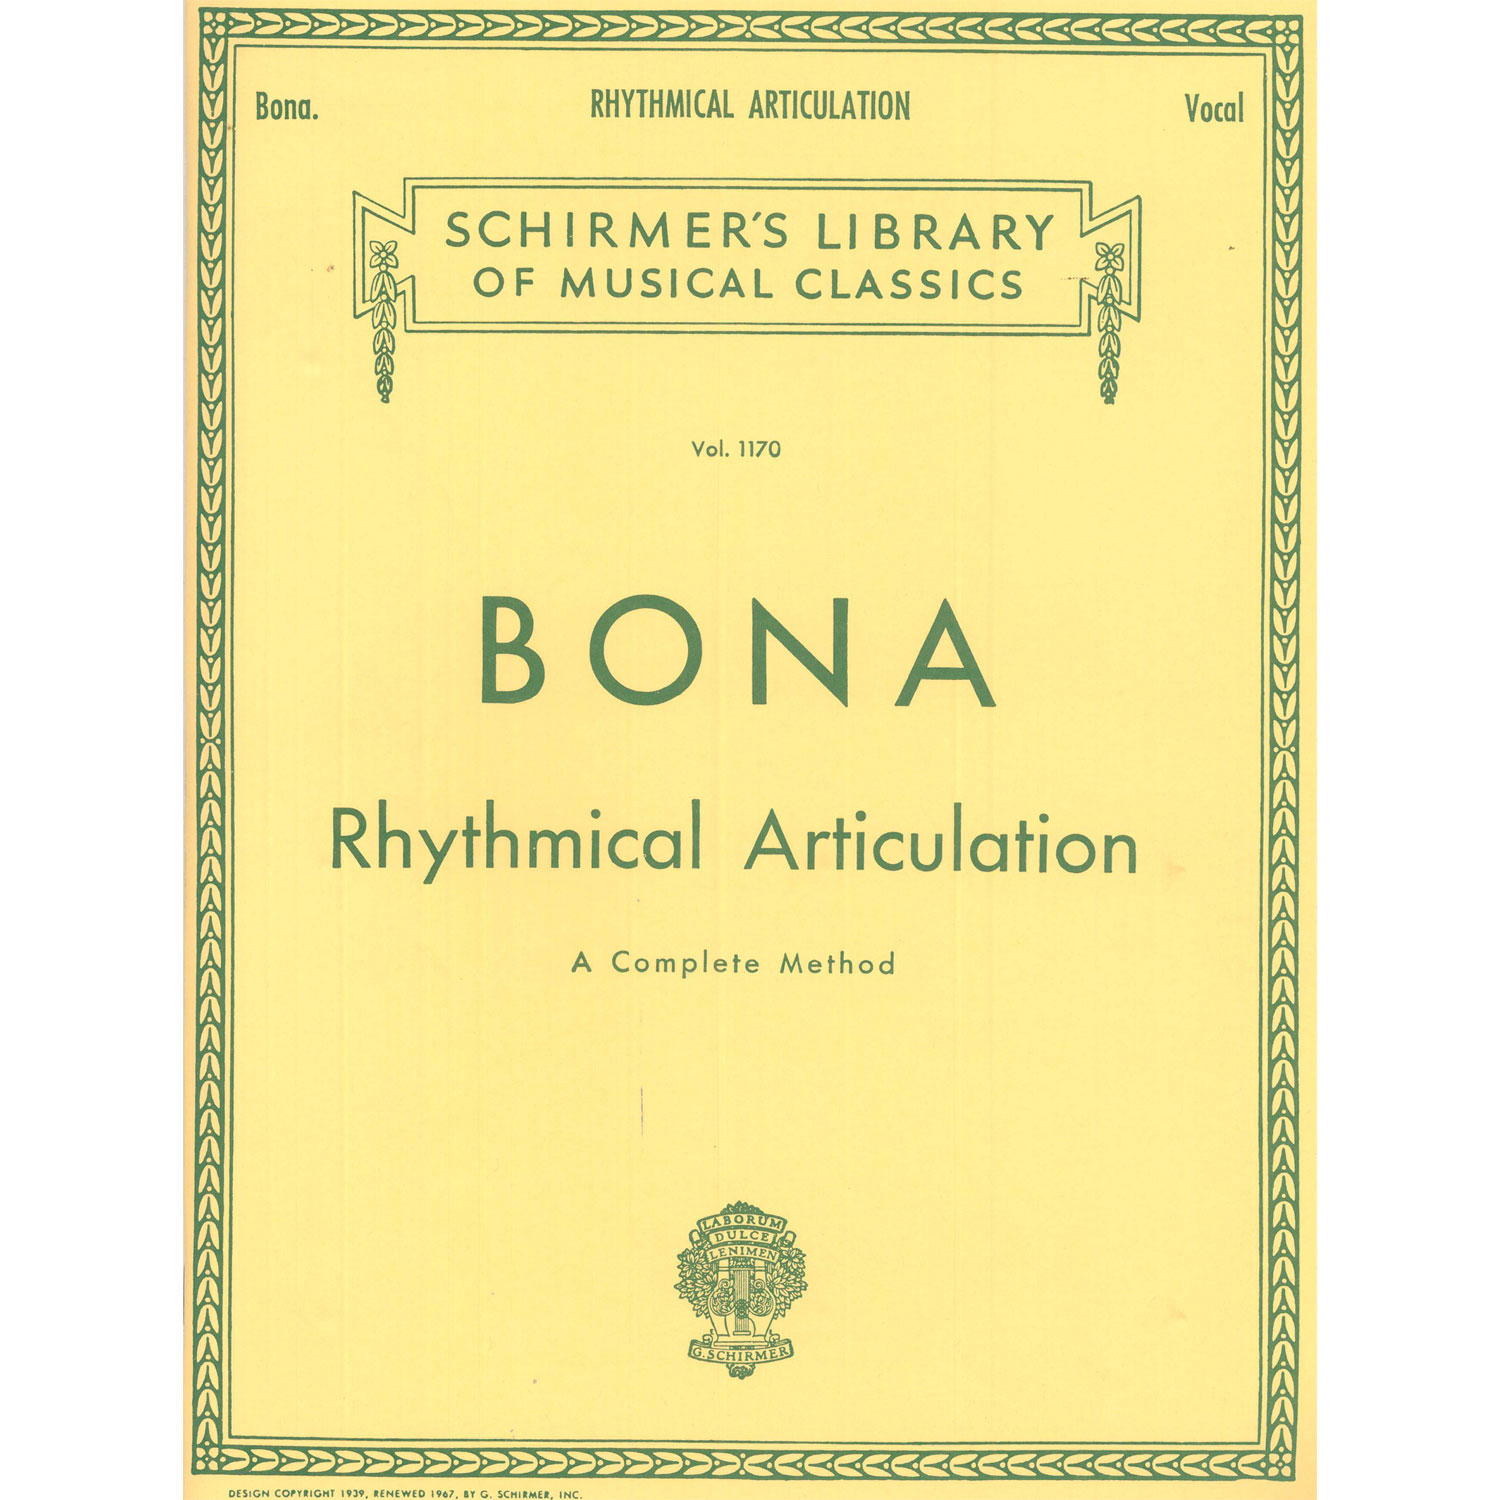 Rhythmical Articulation a Complete Method by Pasquale Bona